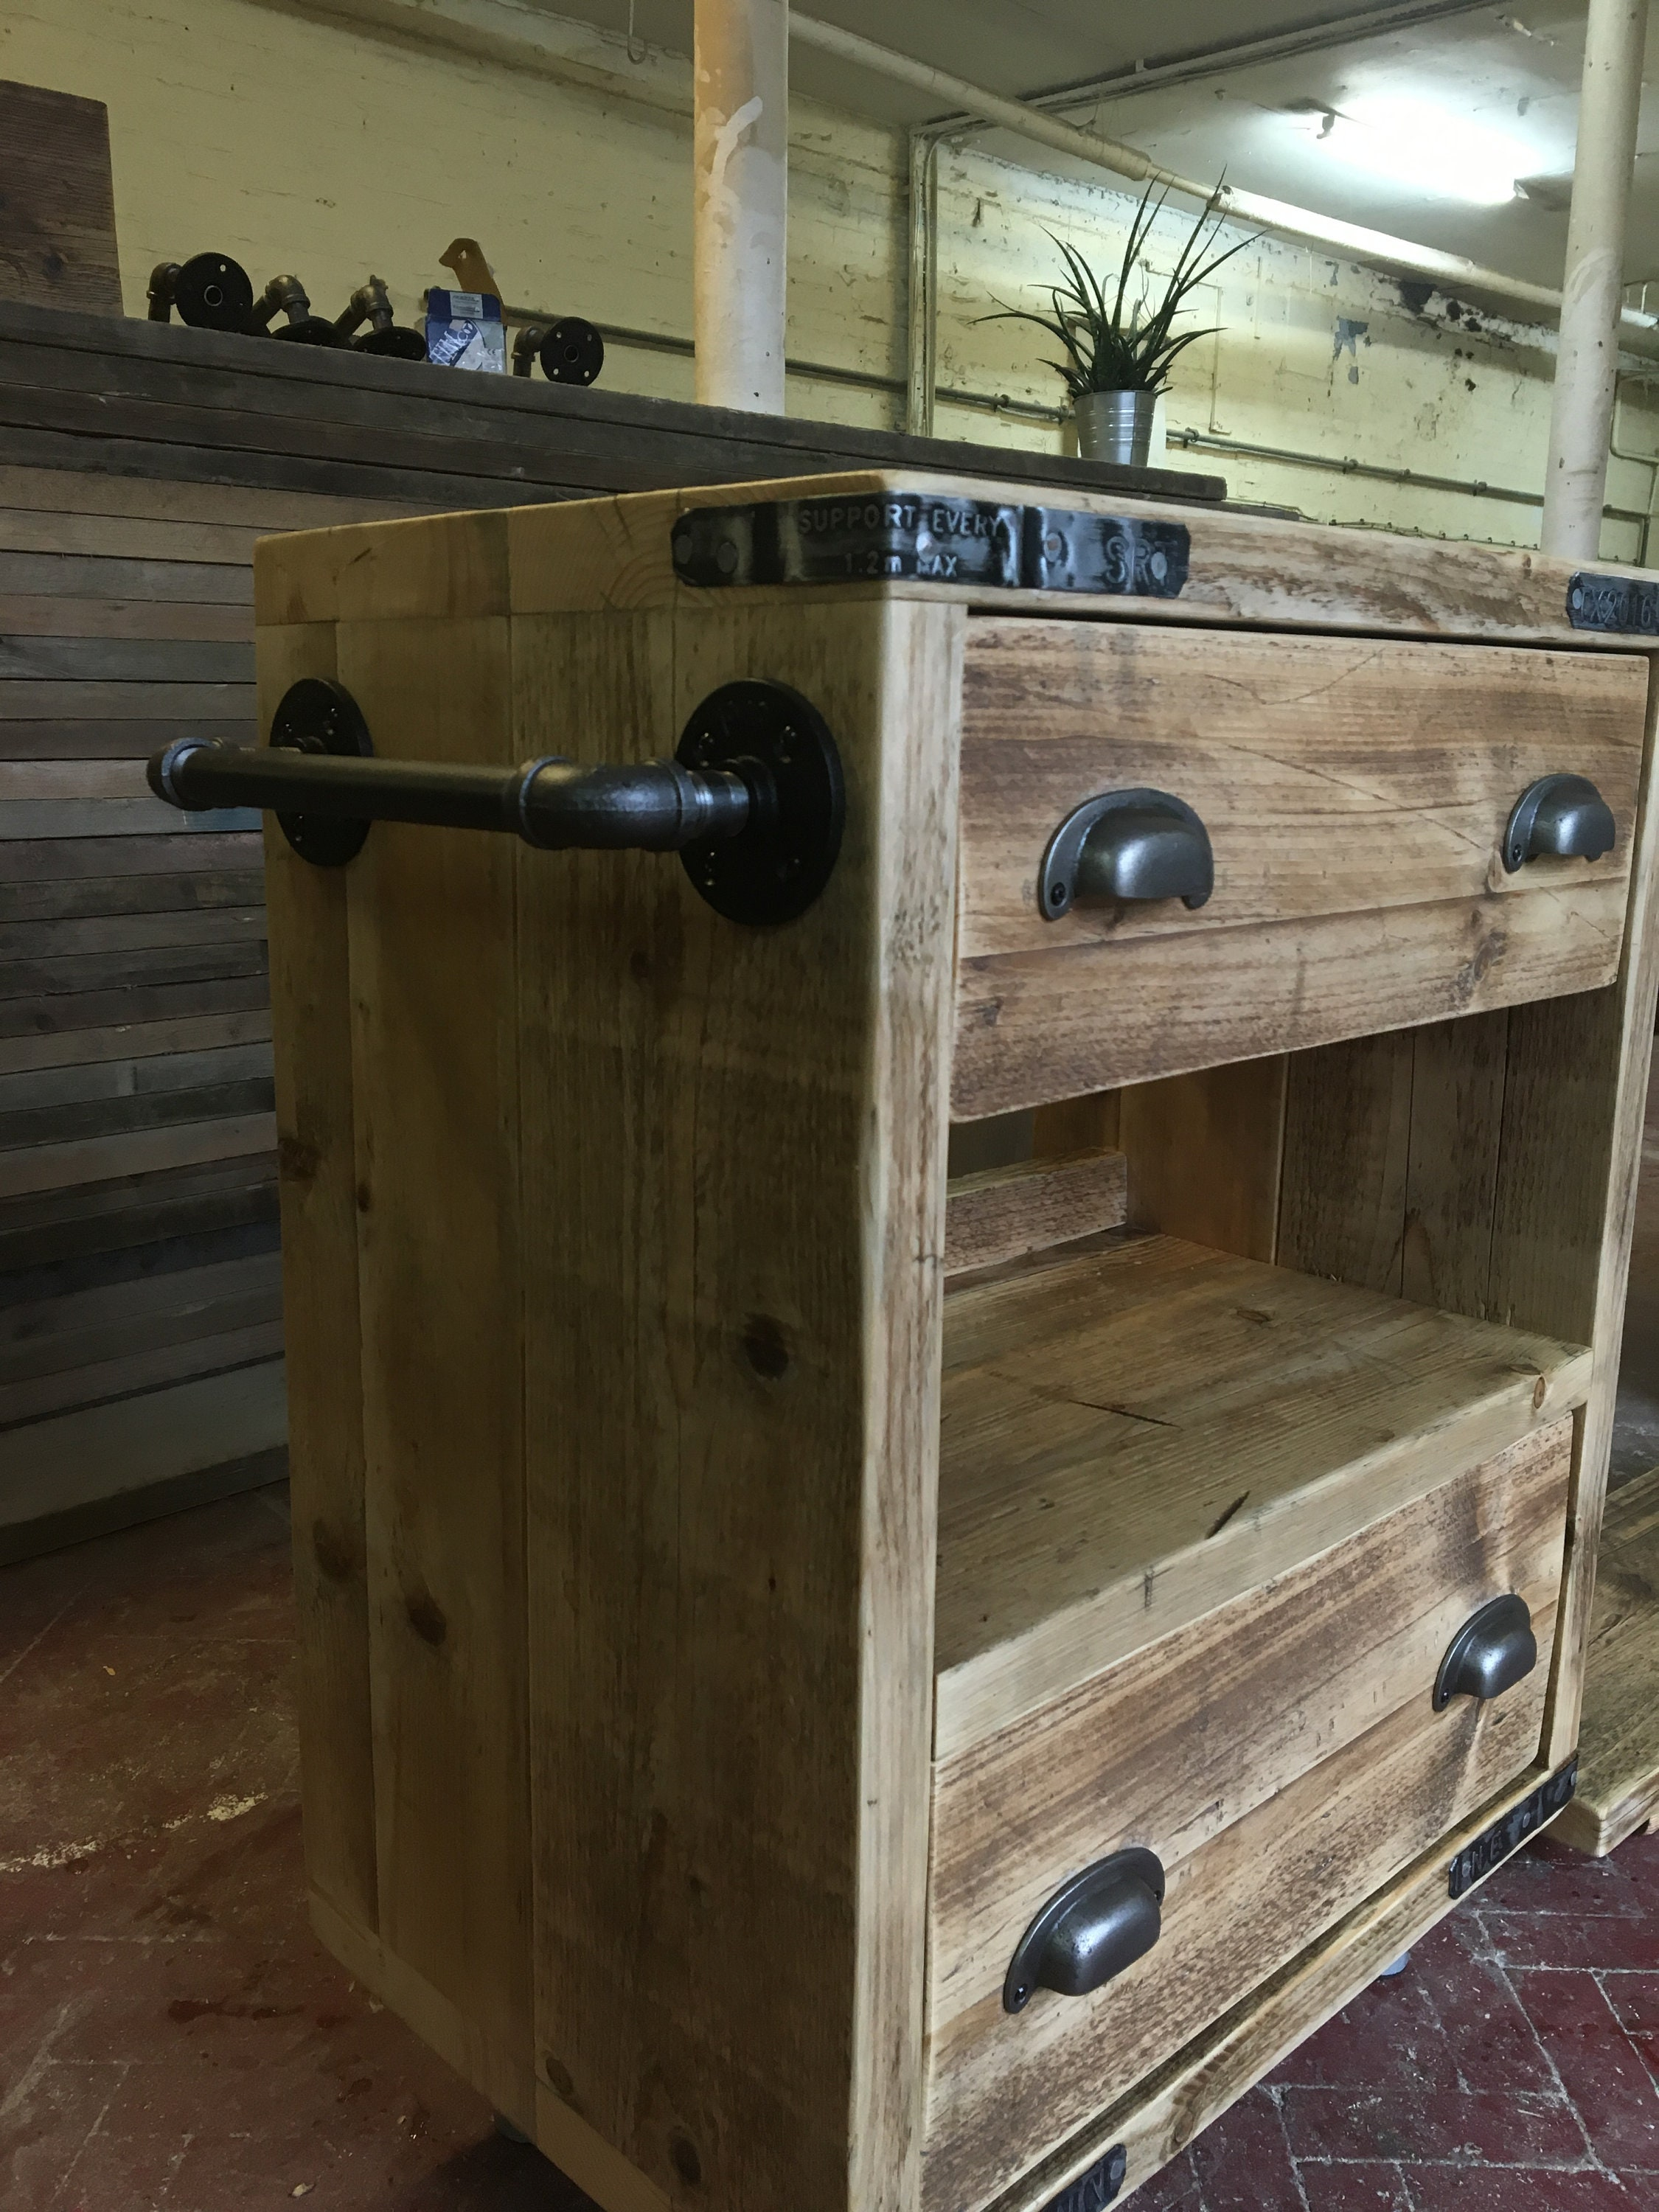 Gaddesden Rustic Wooden Bathroom Vanity Unit Reclaimed